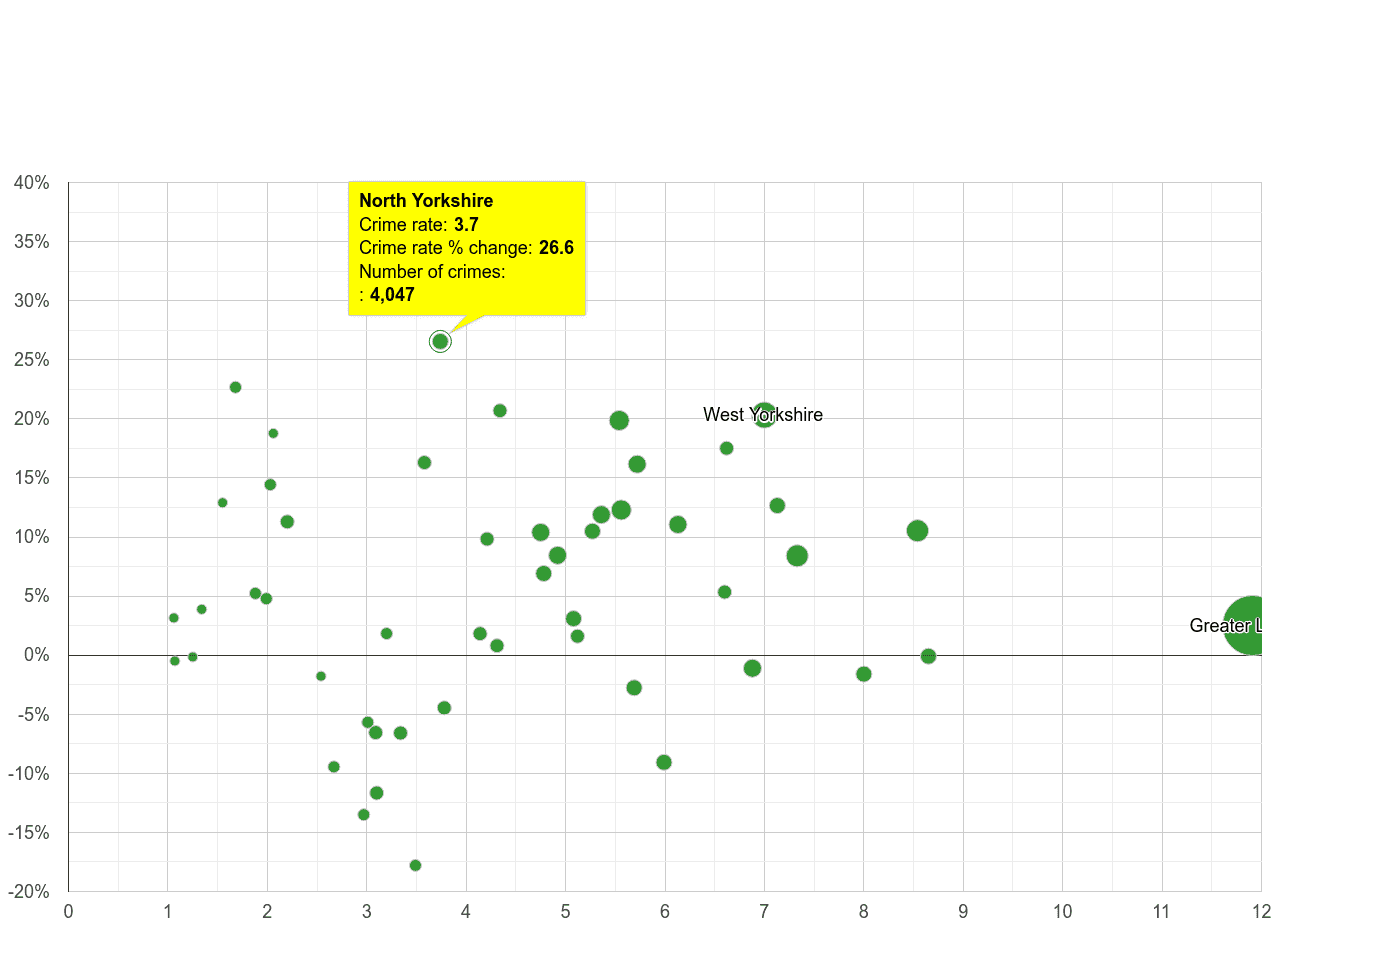 North Yorkshire vehicle crime rate compared to other counties